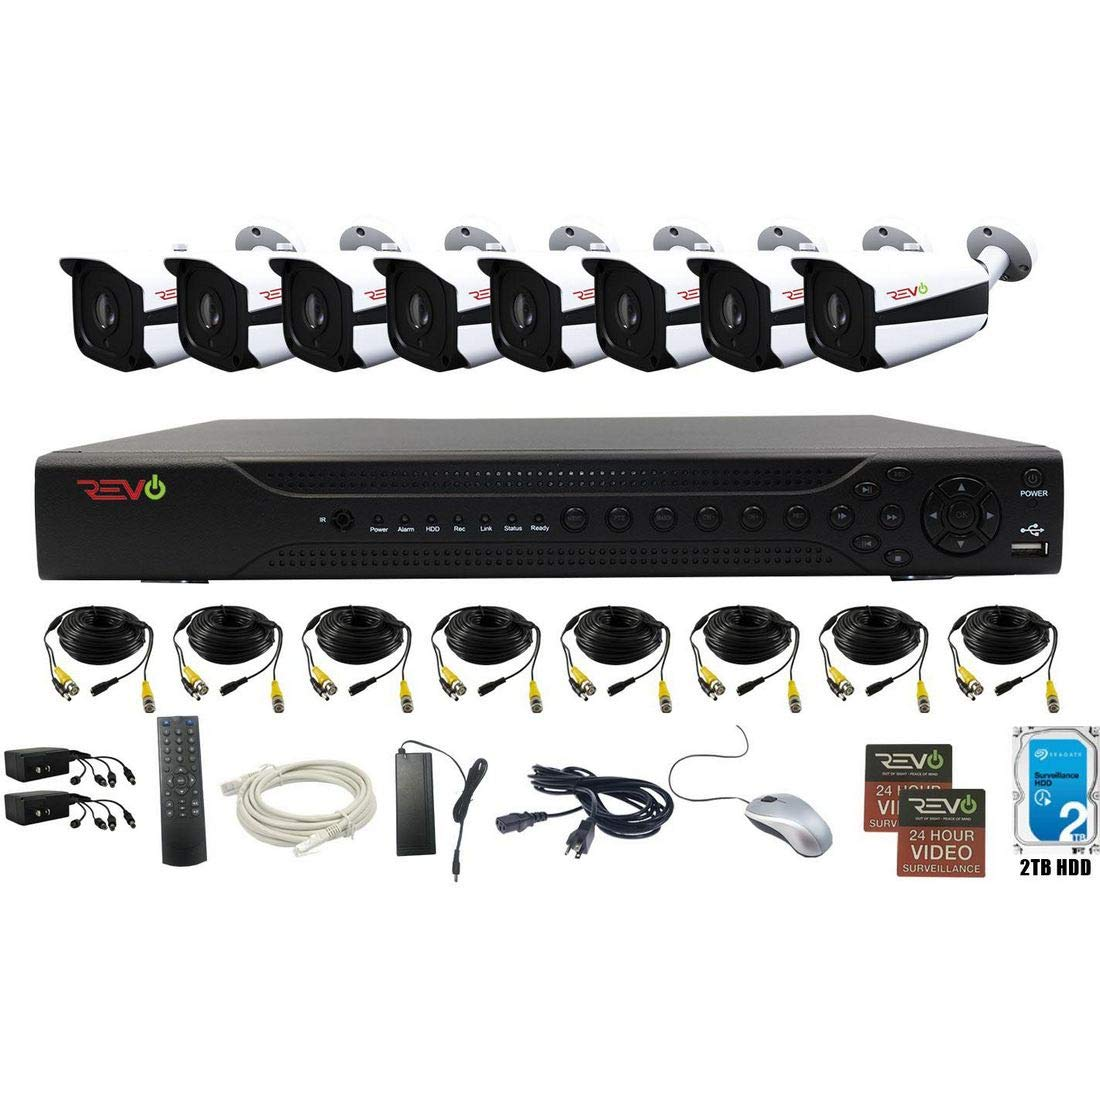 Revo America AeroHD 16Ch. 5MP DVR, 2TB HDD Video Security System, 8 x 5 MP IR Bullet Cameras Indoor/Outdoor - Remote Access via Smart Phone, Tablet, PC & MAC